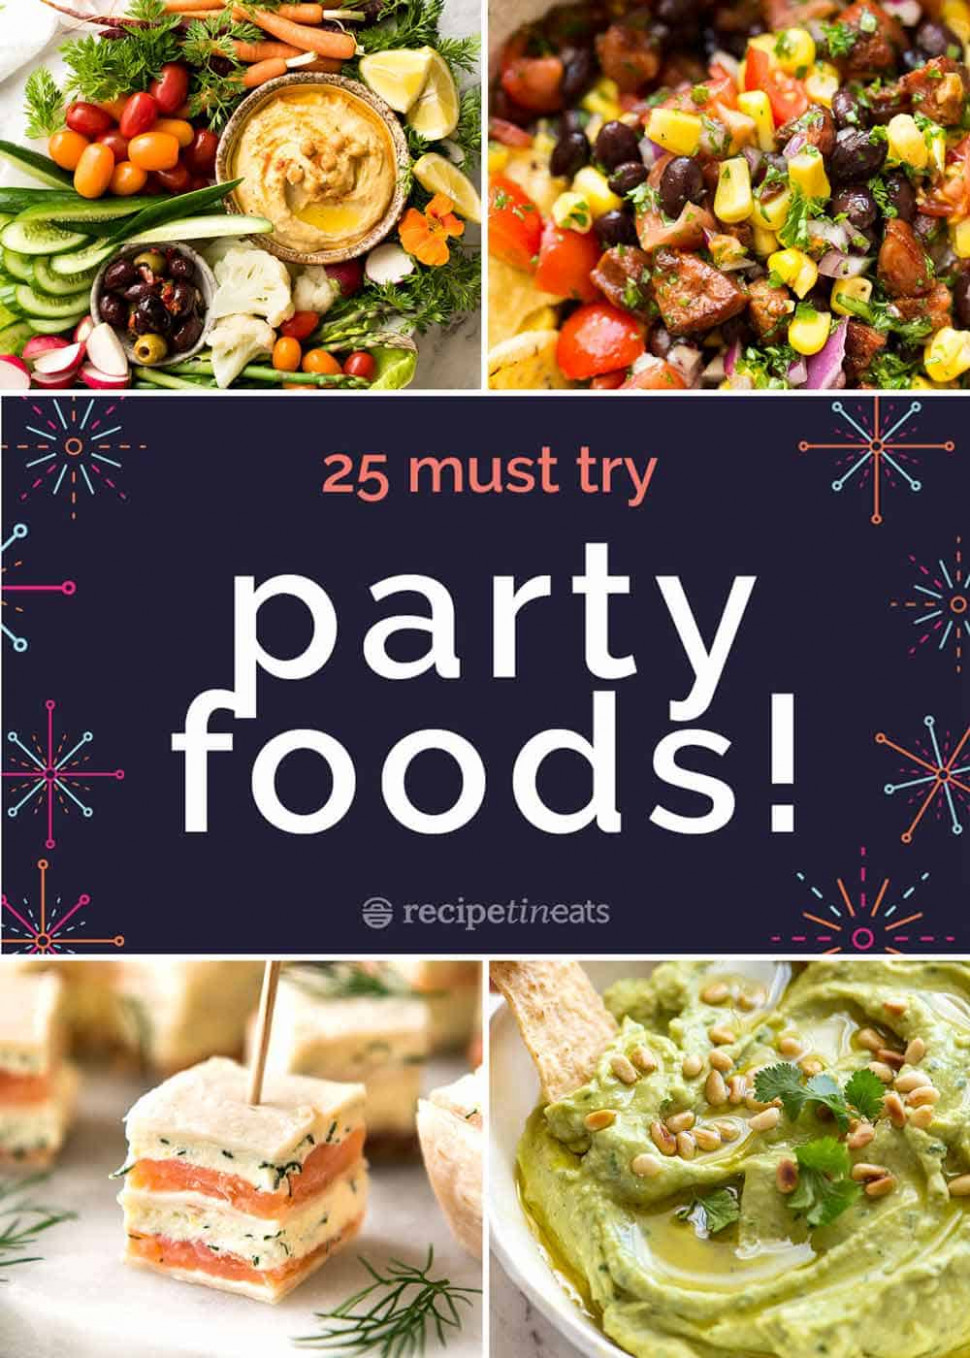 15 BEST Party Food Recipes! - Easy Chinese Food Recipes